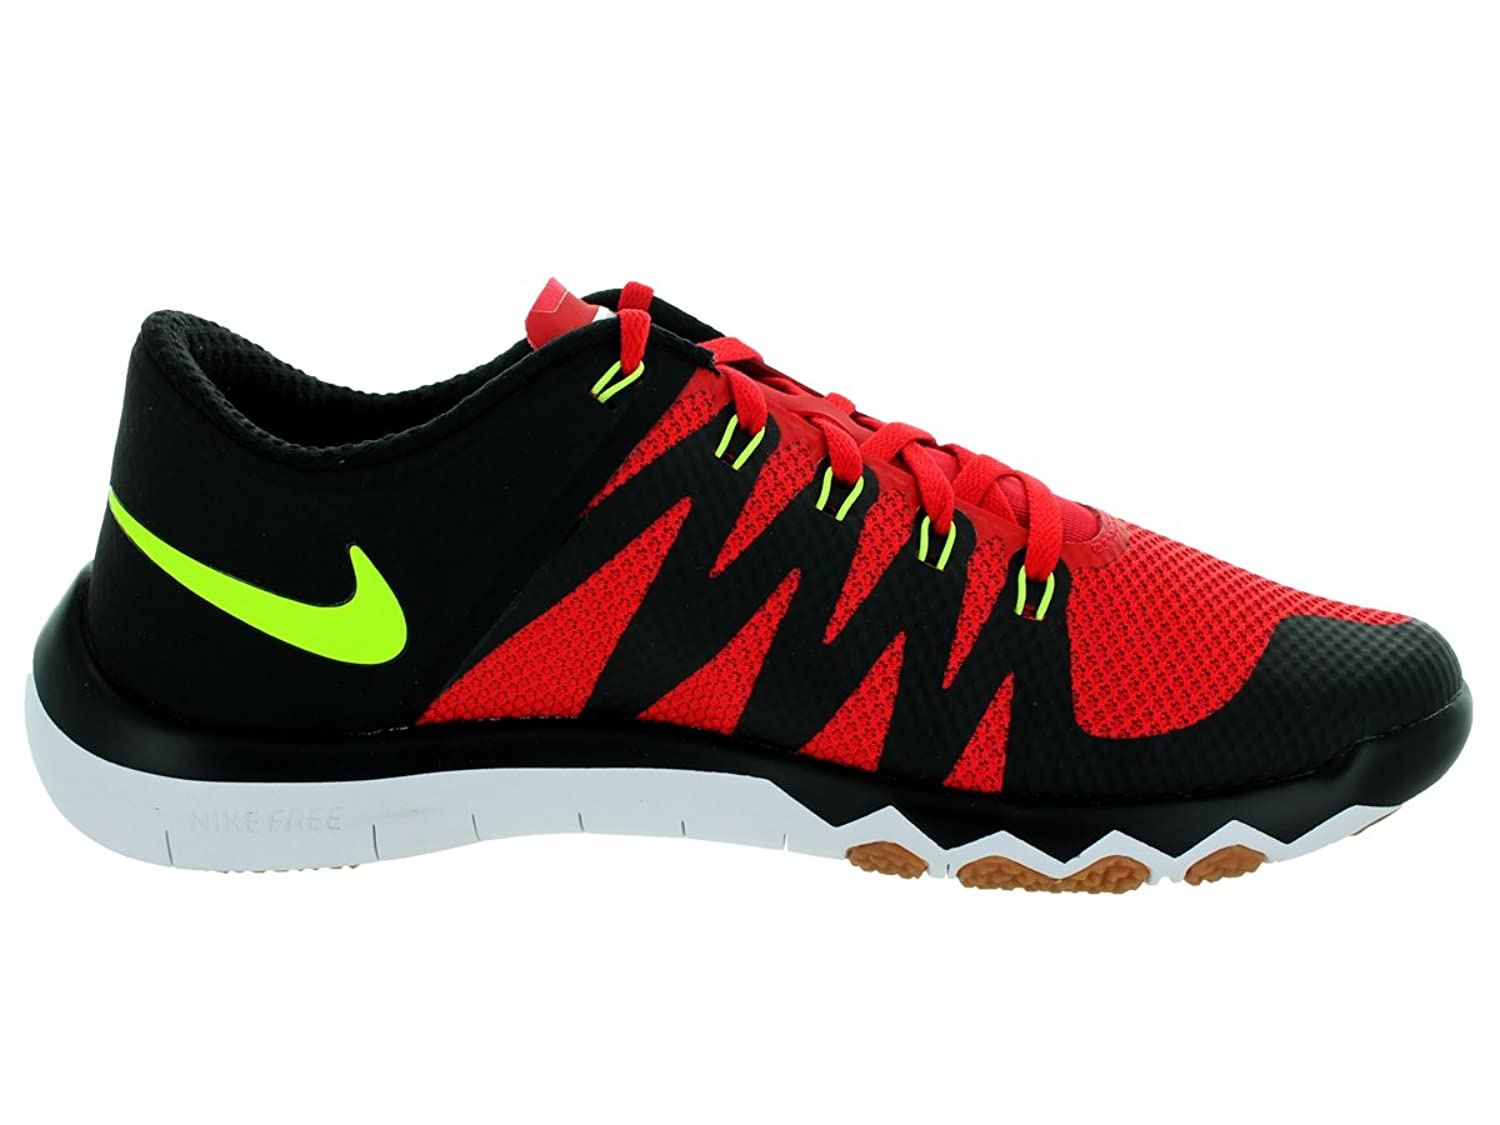 Nike Free Trainer 5.0 V6 Gym 11s Rouge